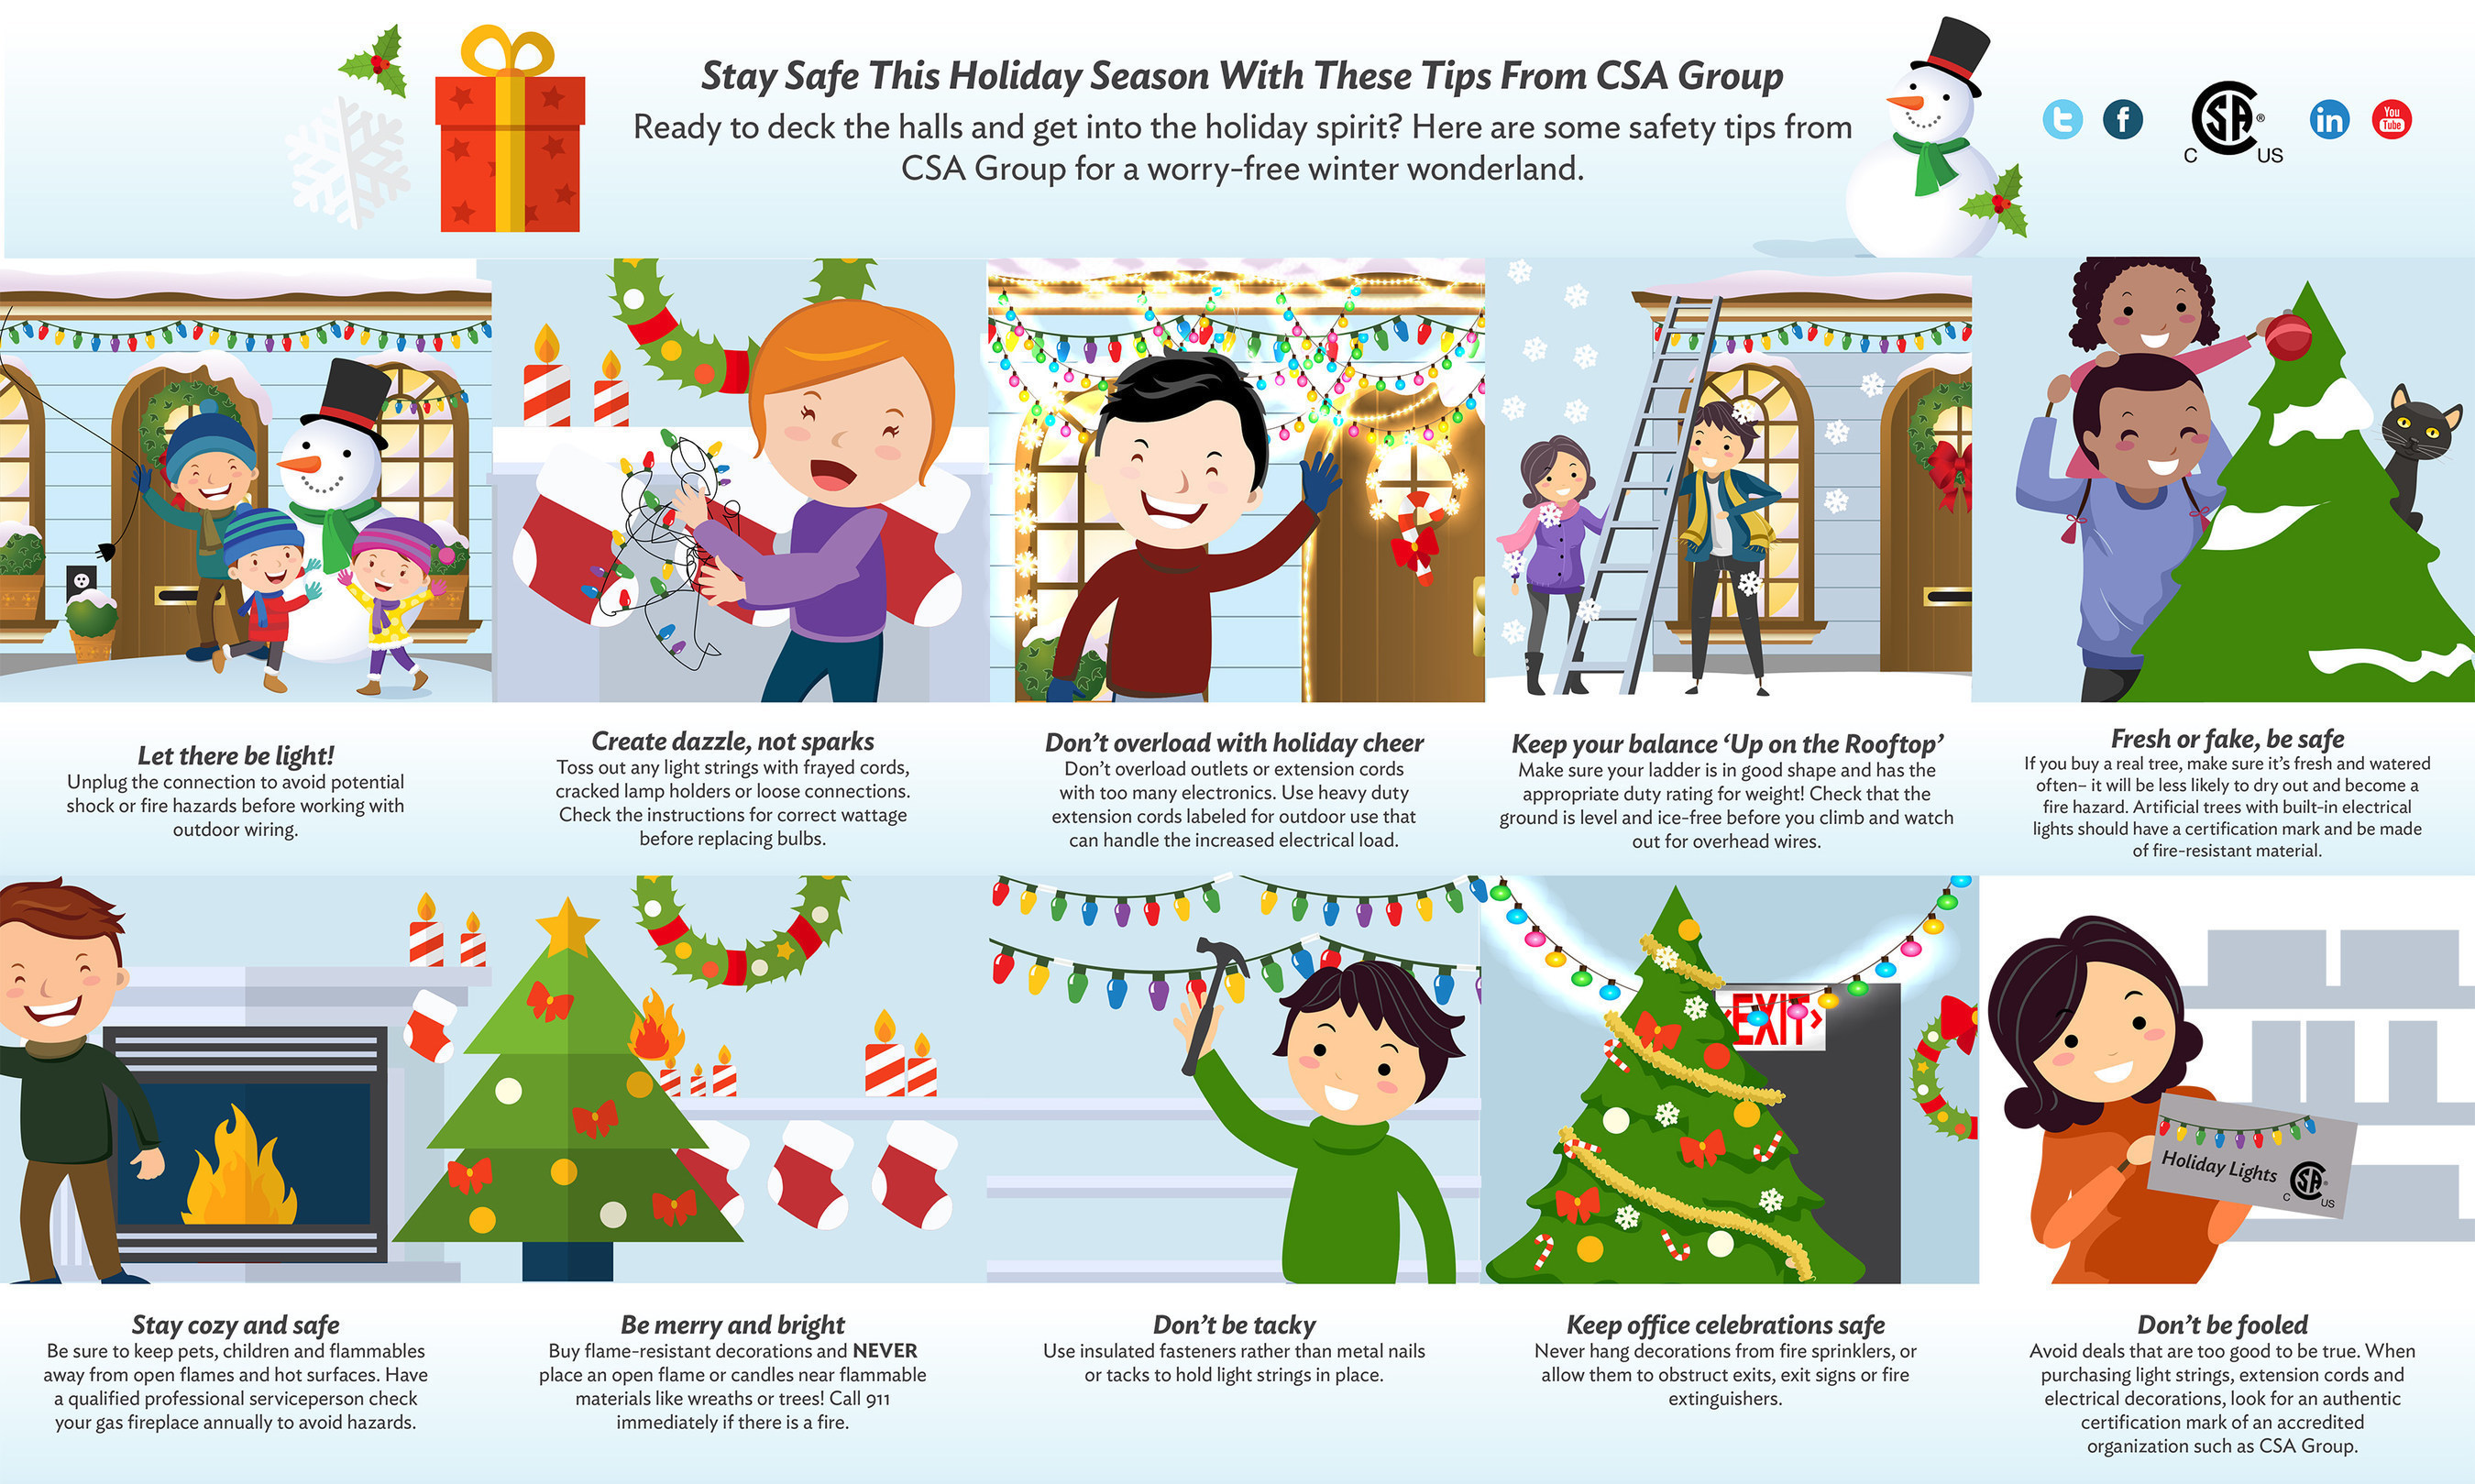 Help make holiday decorating merry, not scary